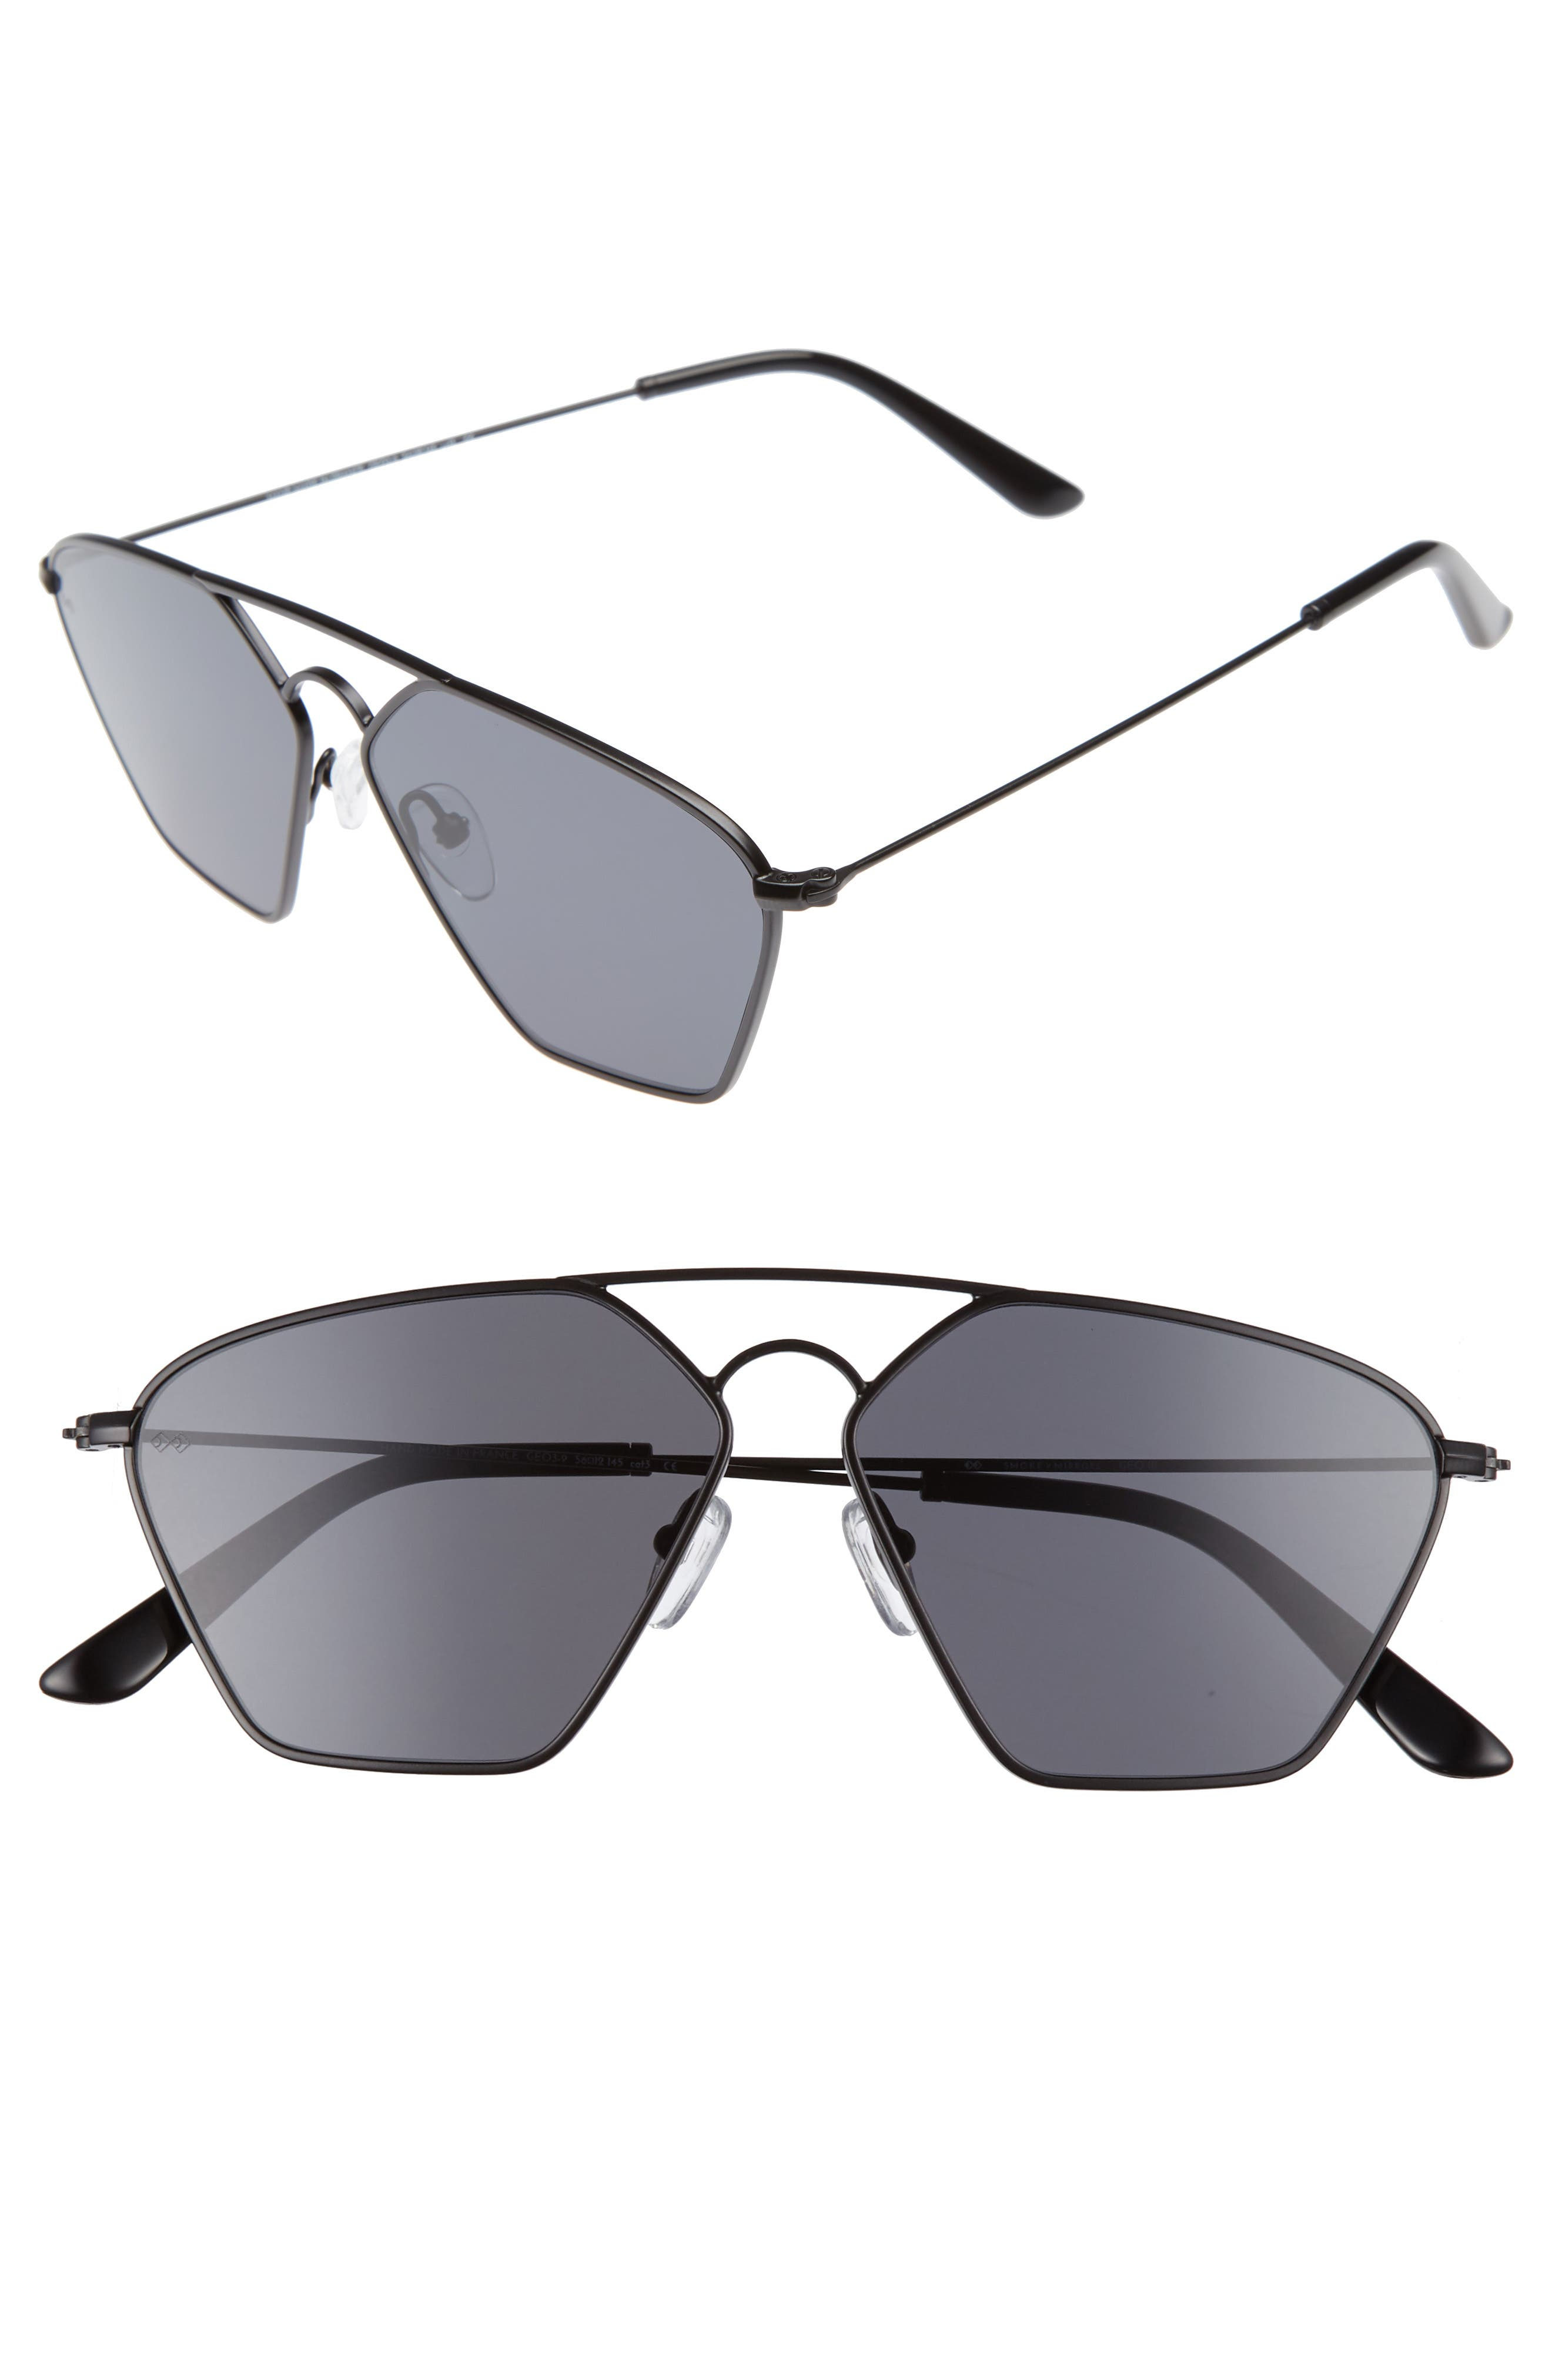 Geo 3 56mm Retro Sunglasses,                             Main thumbnail 1, color,                             Matte Black/ Dark Black